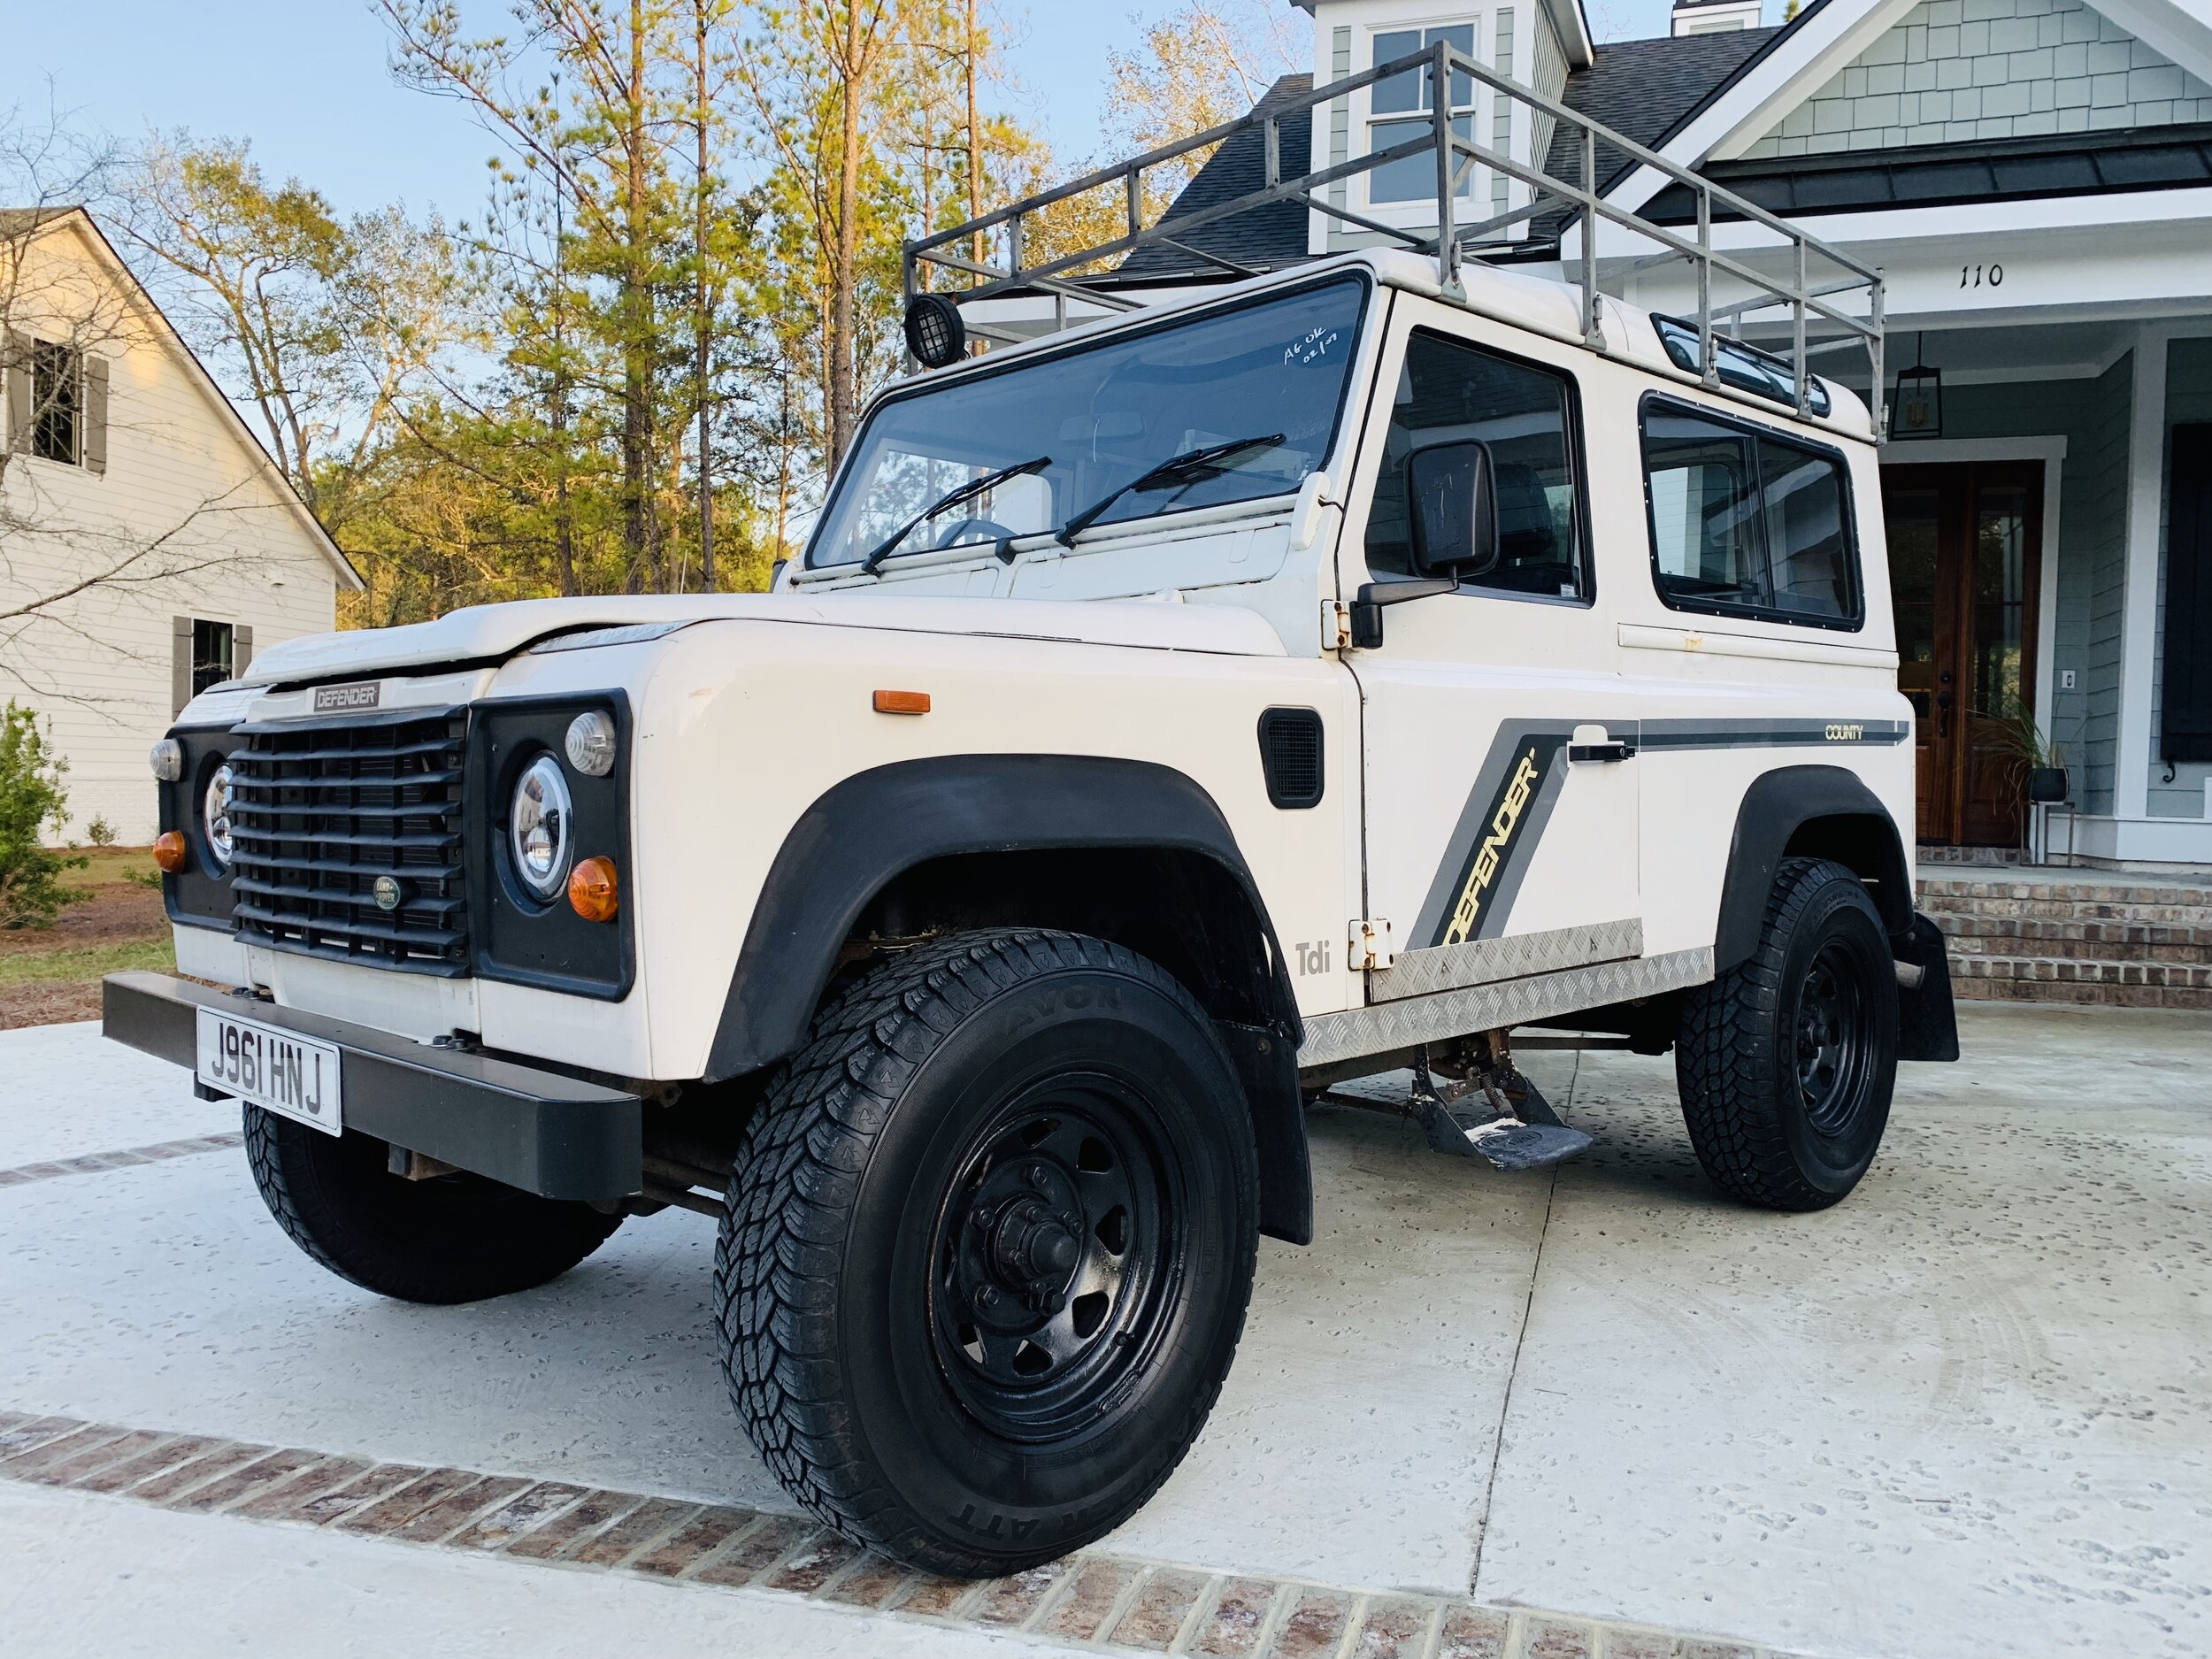 1992 Land Rover Defender 90 County - In classic white, this gorgeous example is equipped with roof rack for gear. Modern LED HALO headlights add a modern touch & custom interior.$26,000. SOLD